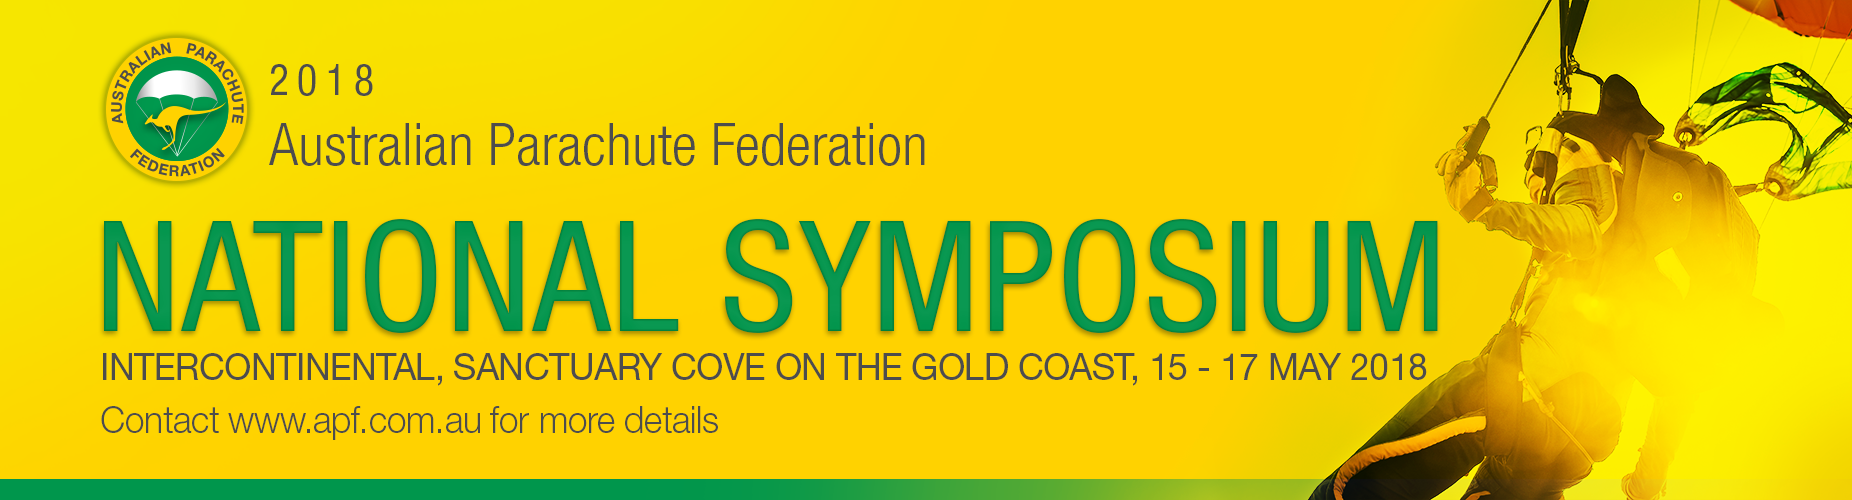 2018 national symposium WEB BANNER